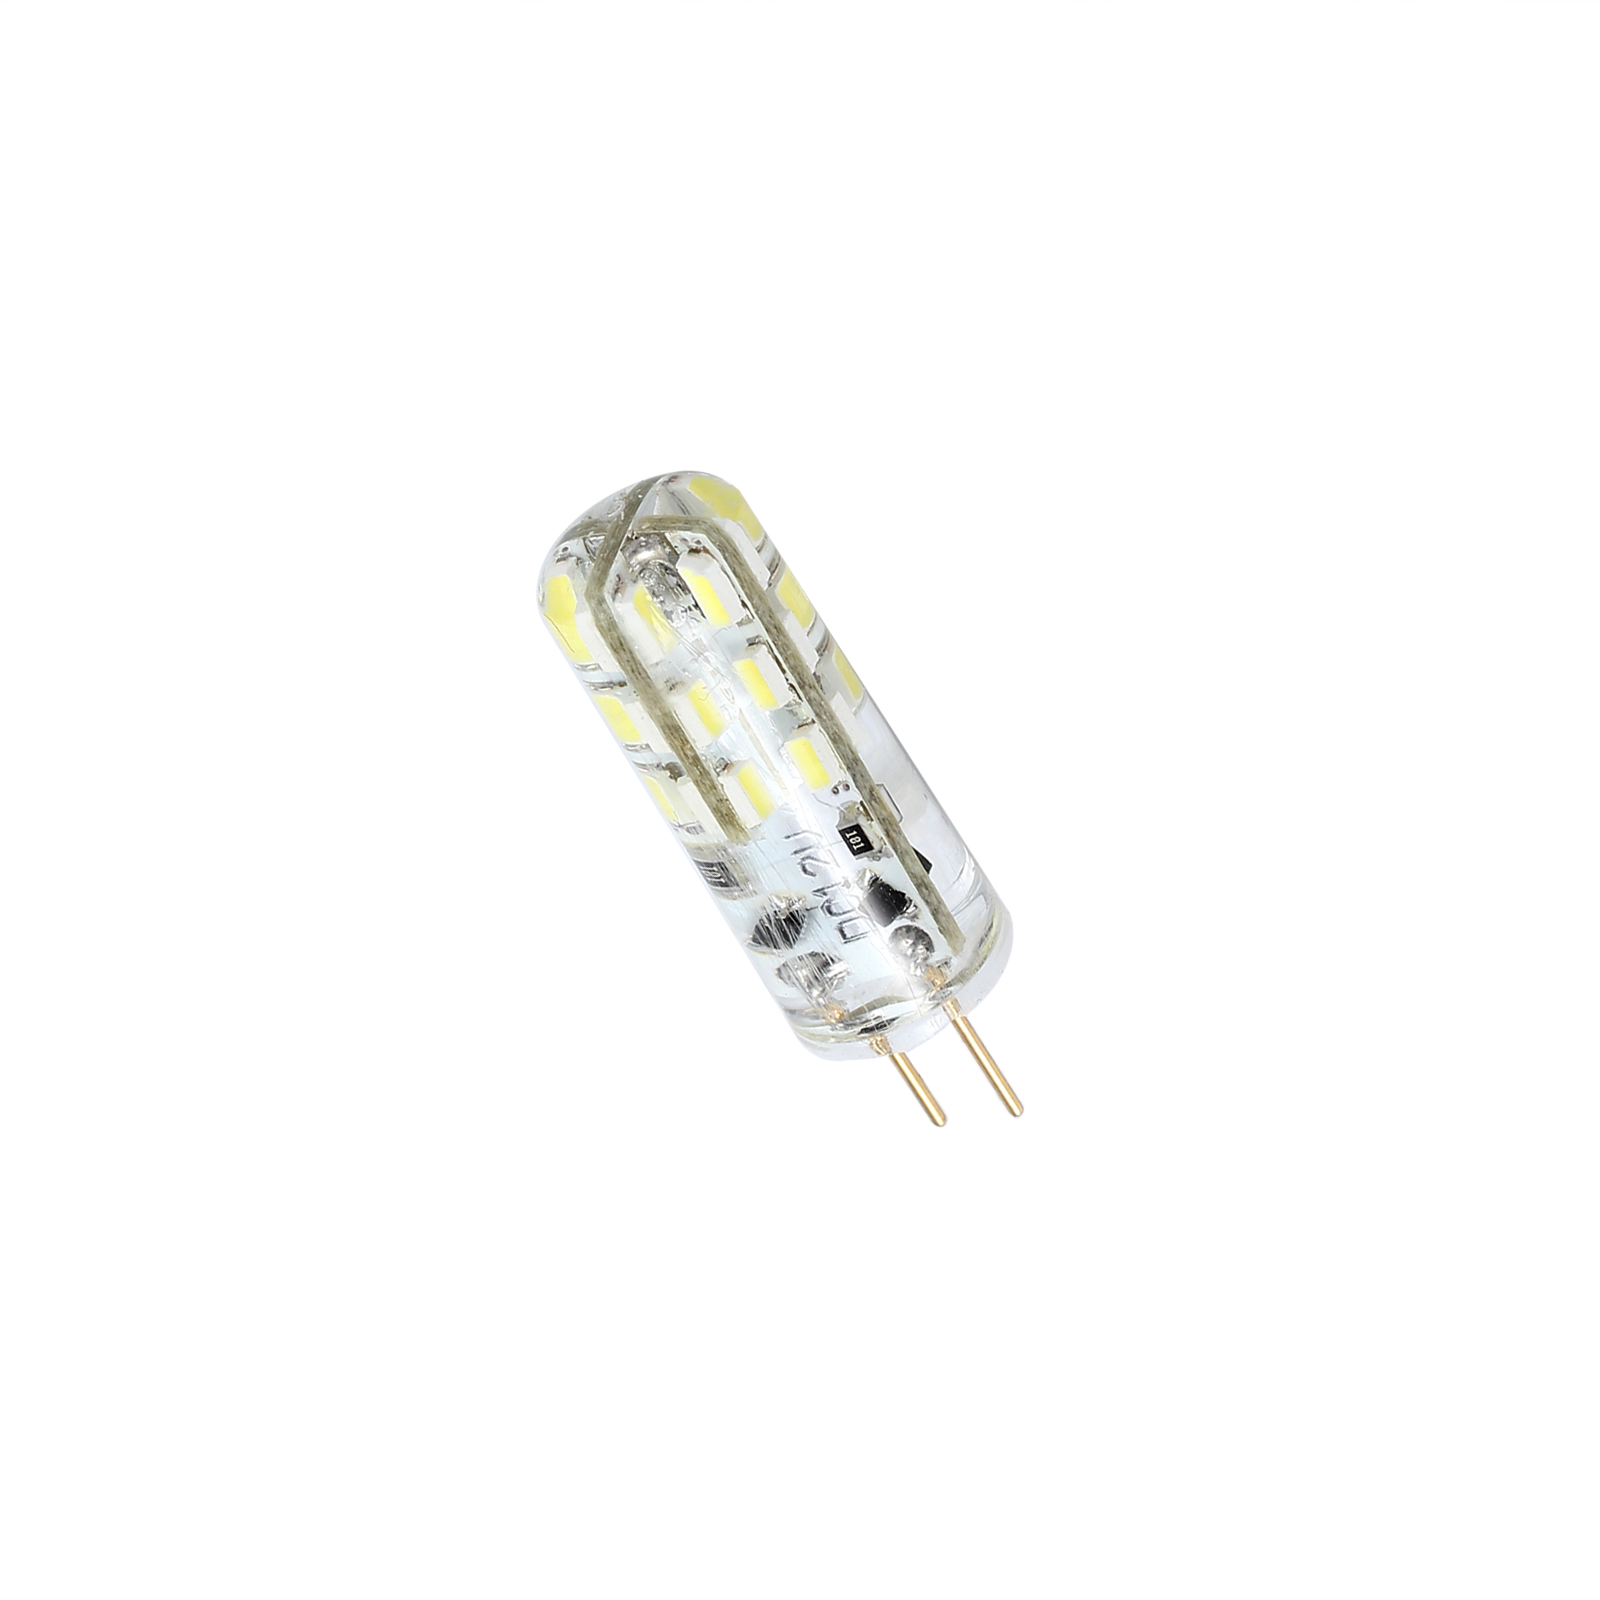 10pcs G4 Led Smd Capsule Corn Light Bulb Replace Halogen